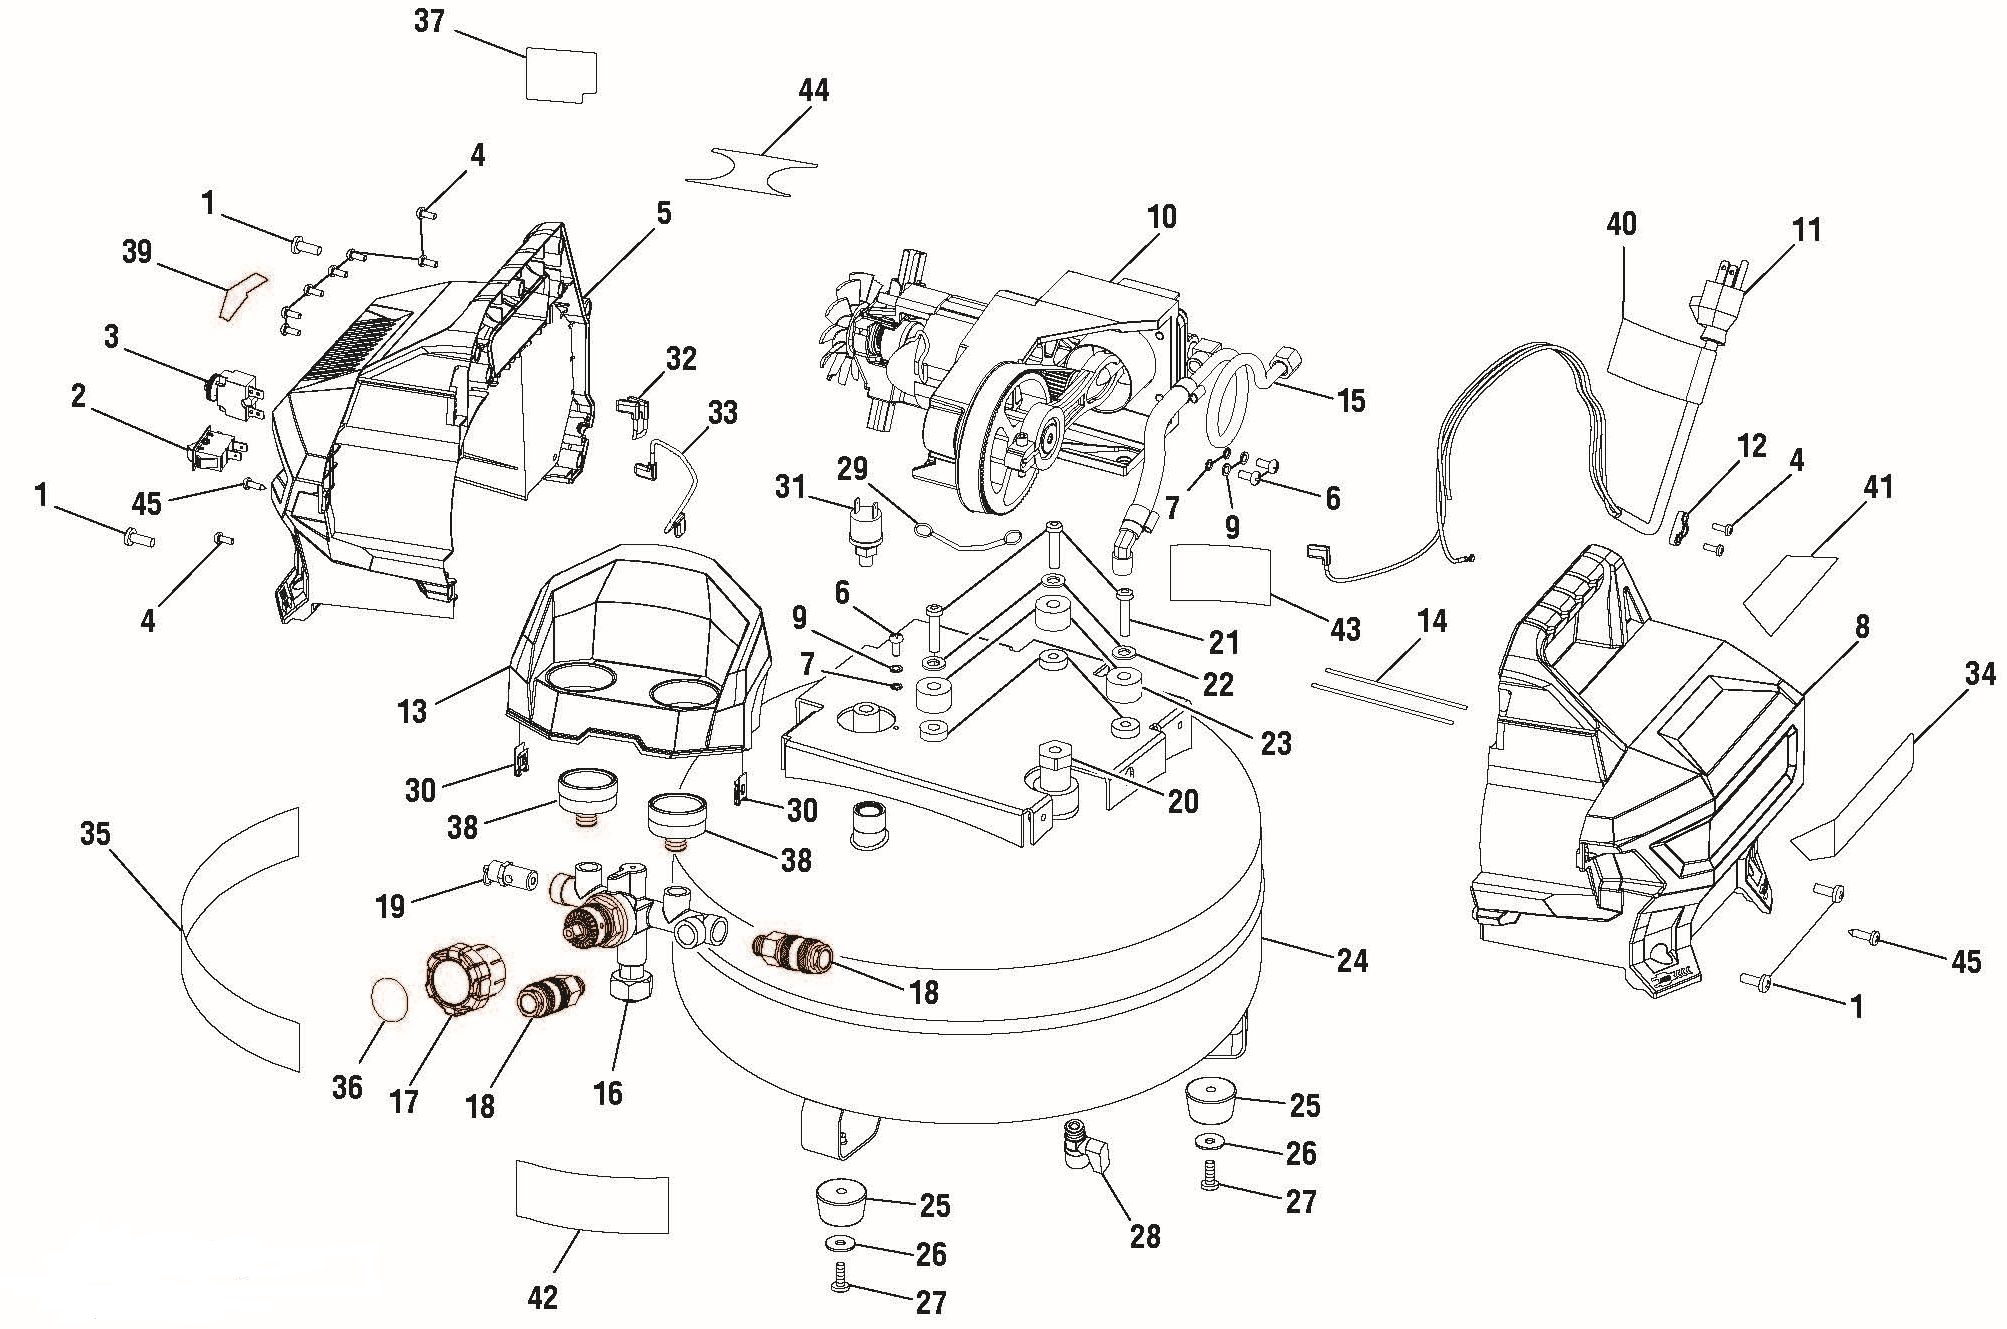 Ridgid Tool Parts Diagrams Detailed Schematics Diagram 300 Wiring Of60150ha Master Repair Maruyama Source Switch